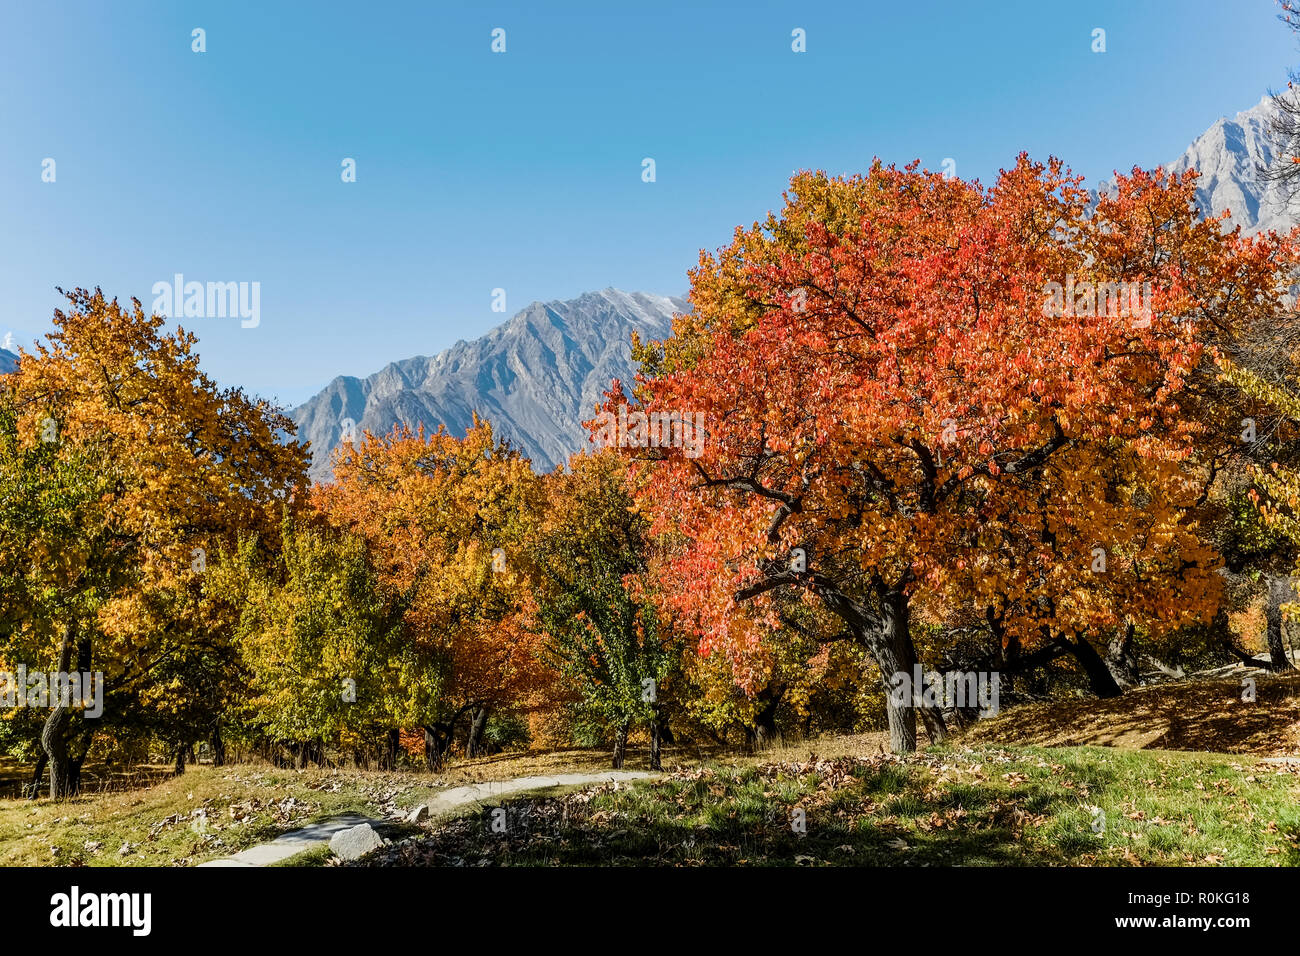 Colorful foliage in autumn with mountain and blue sky in the background. Altit royal garden, Gilgit-Baltistan, Pakistan. - Stock Image